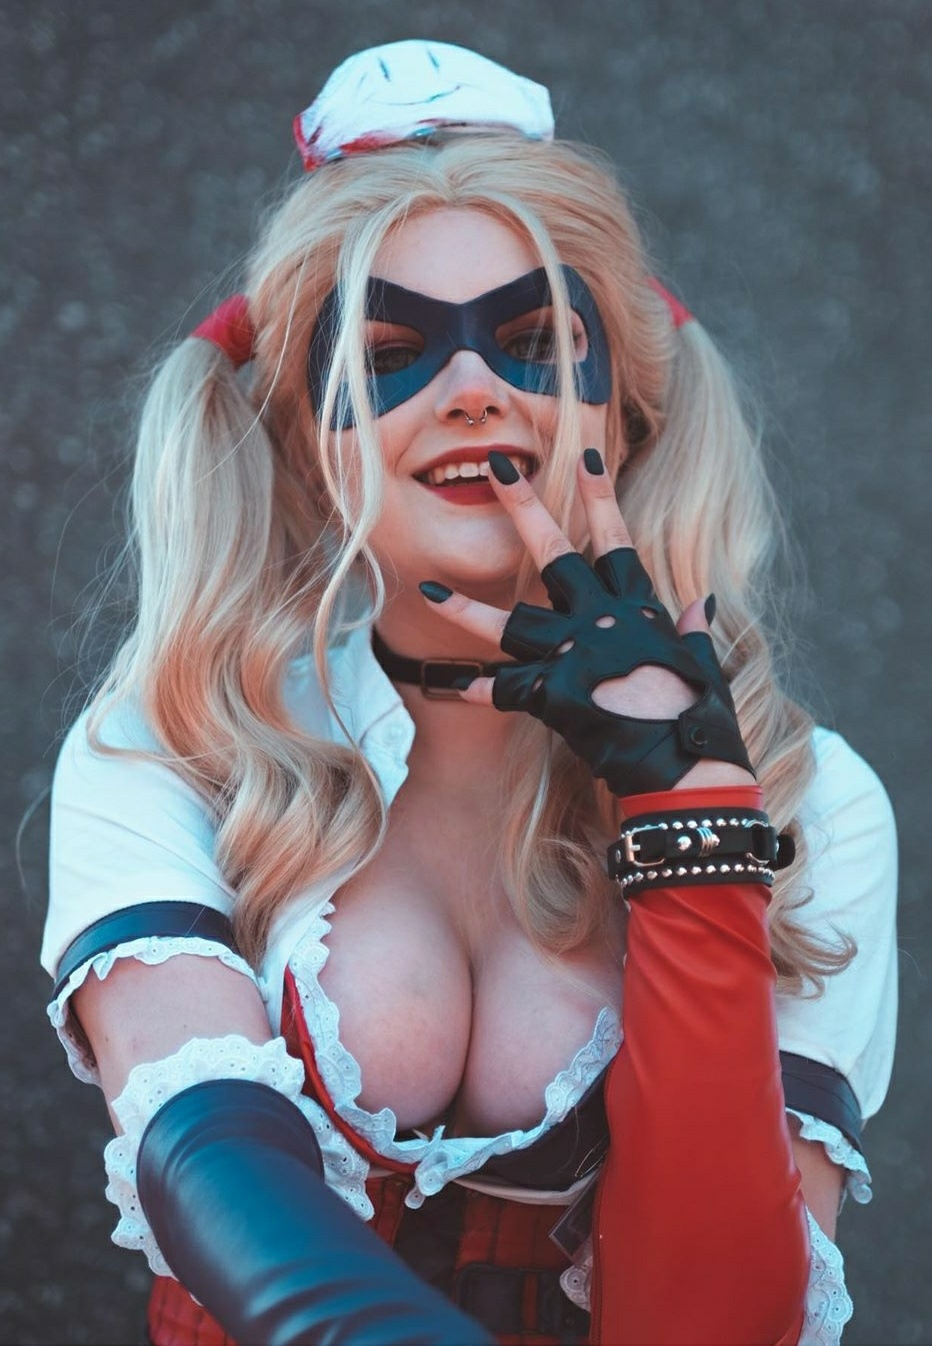 Tare.cosplay – Harley Quinn